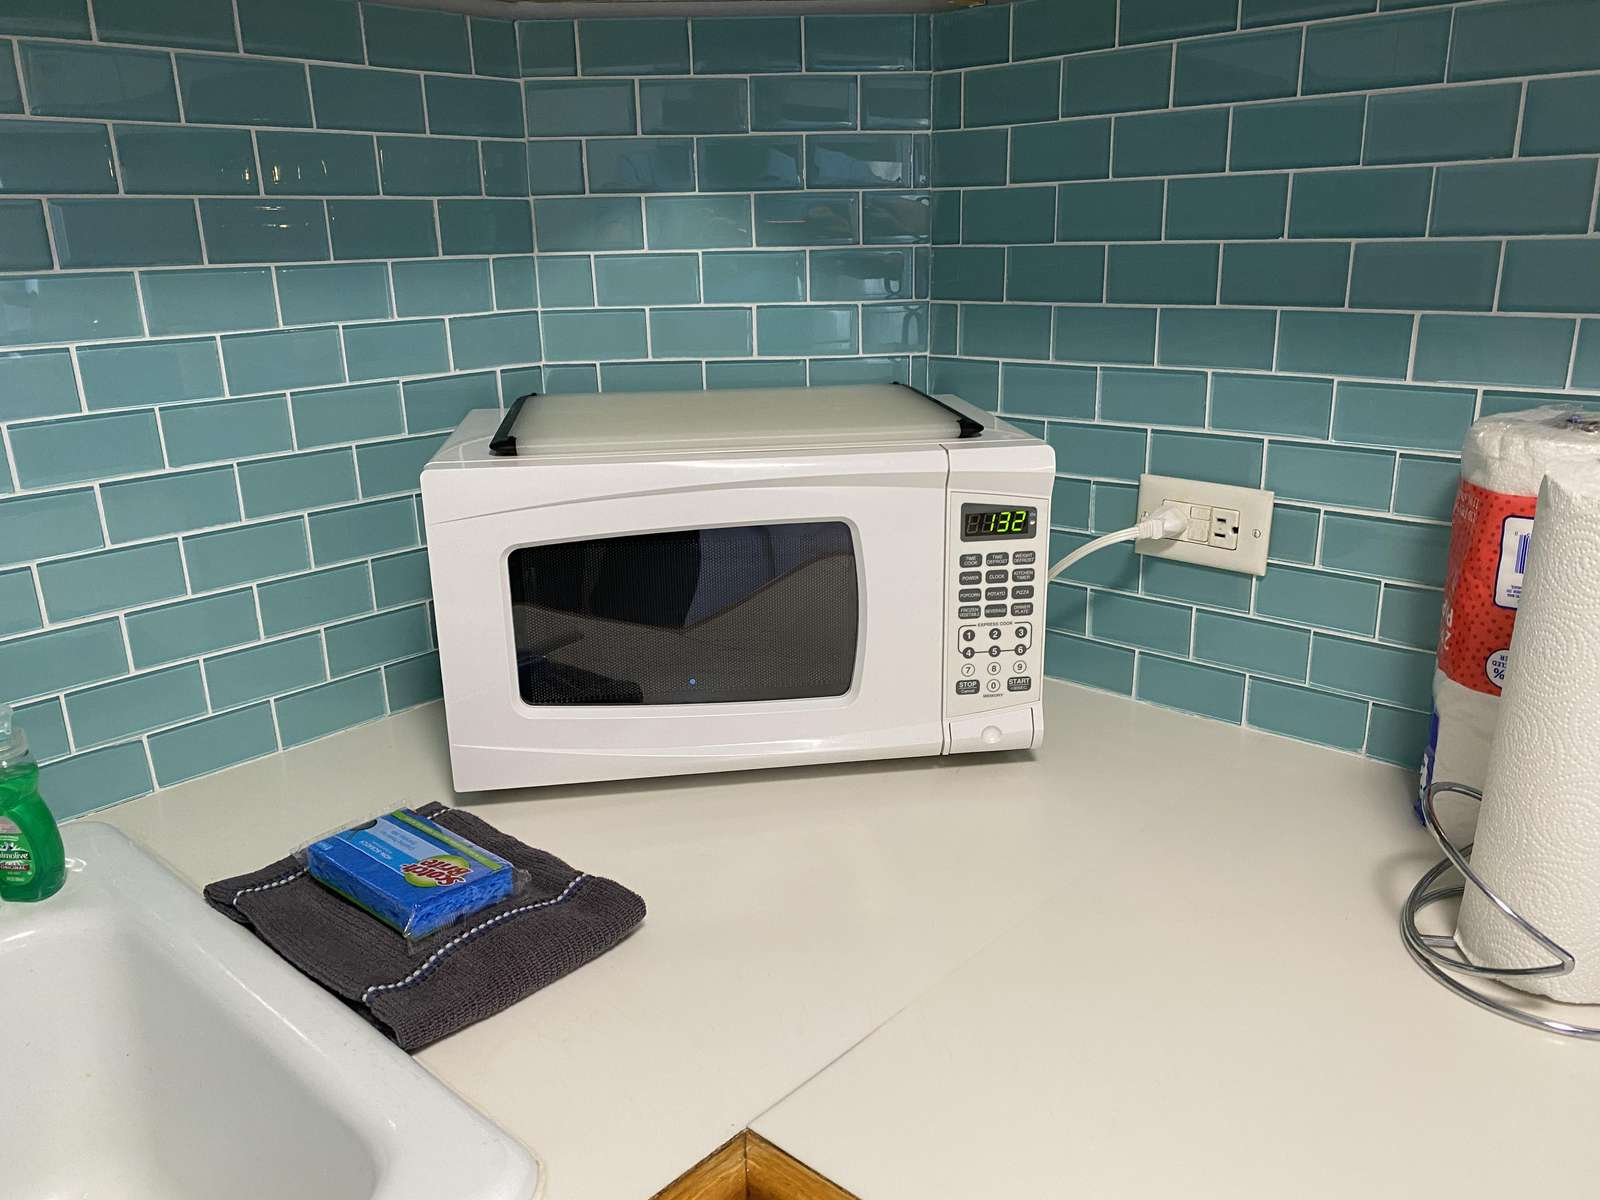 Glass tile backsplash added Jan 2020